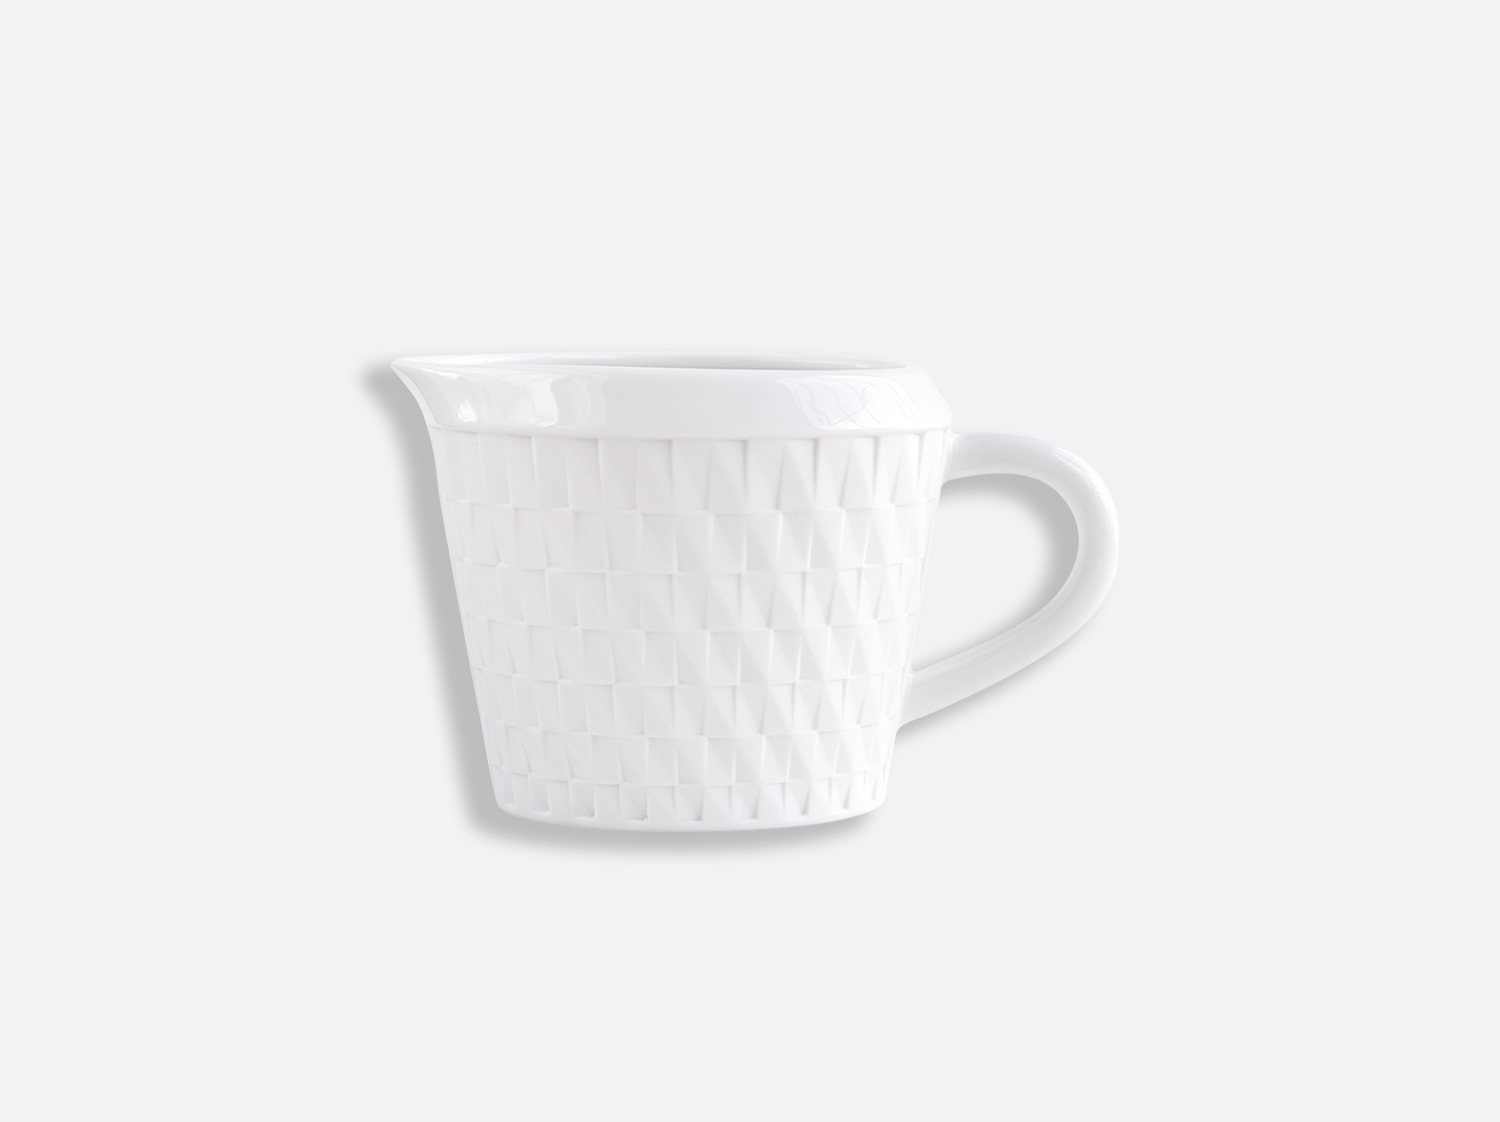 China Creamer of the collection Twist | Bernardaud